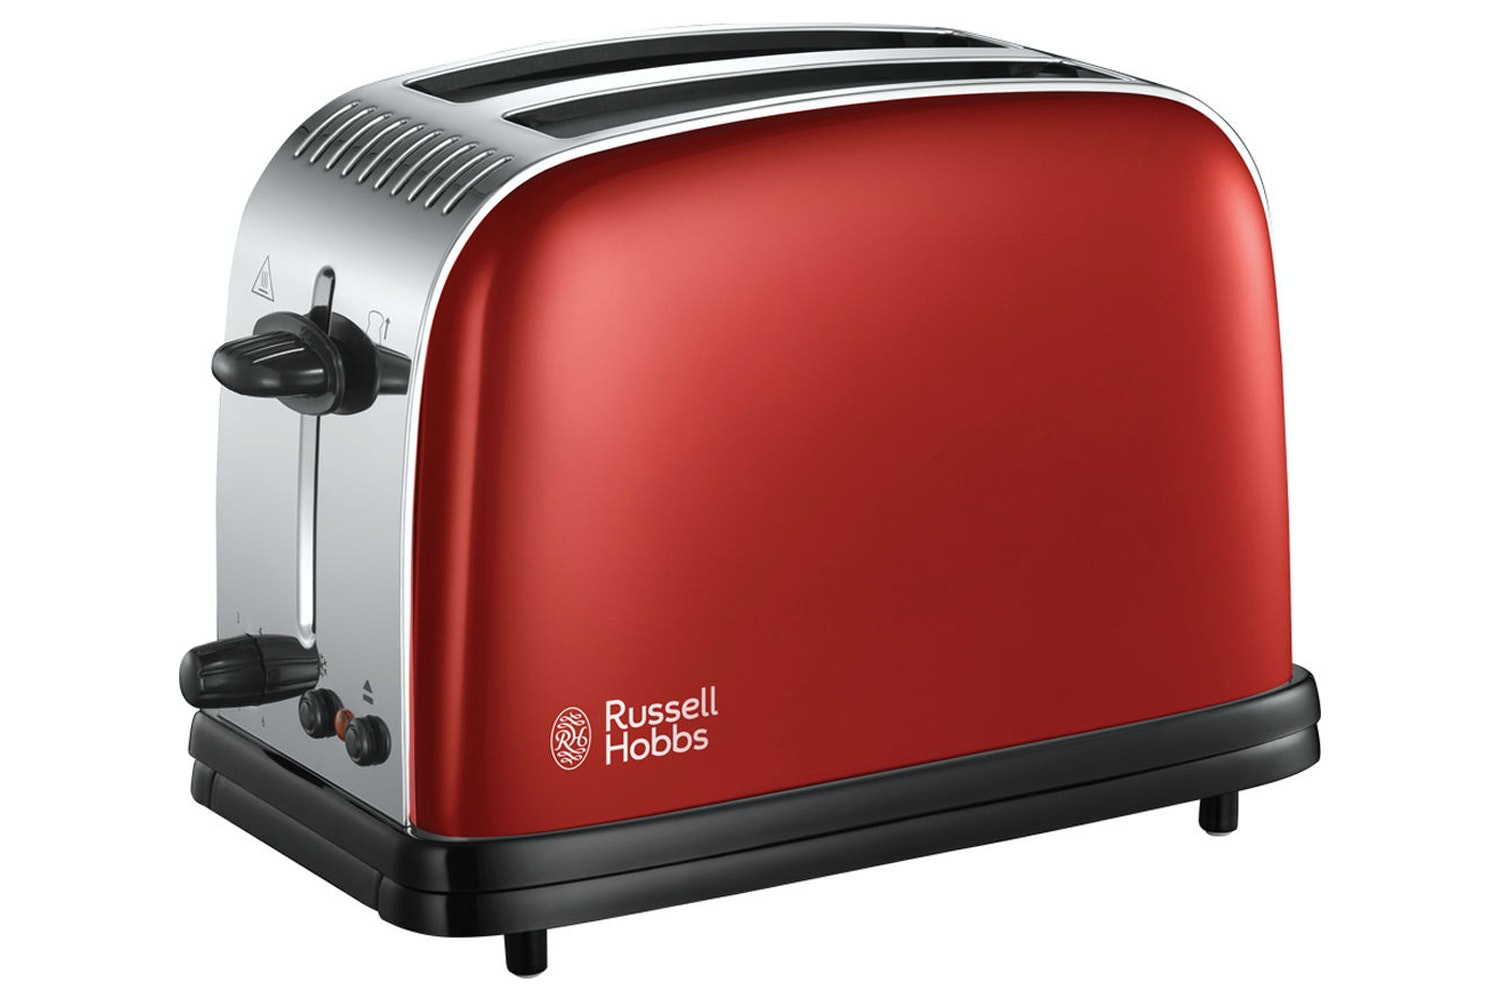 Russell Hobbs 2 Slice Toaster | 23330 | Red